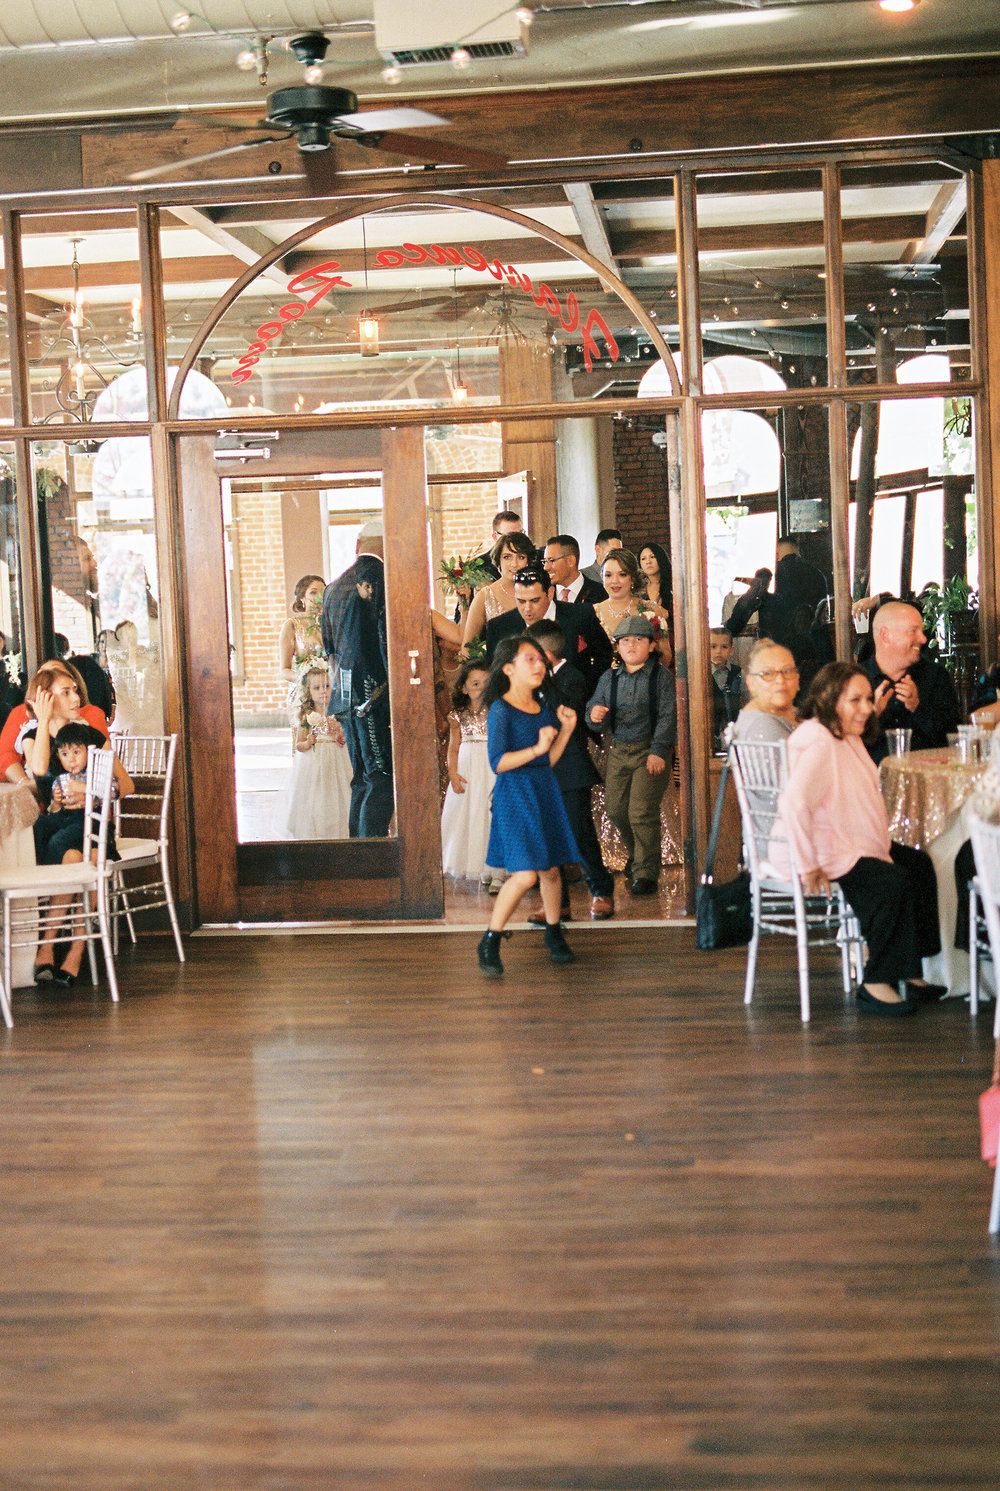 life arts center dtr l m wedding u2014 heather anderson photography